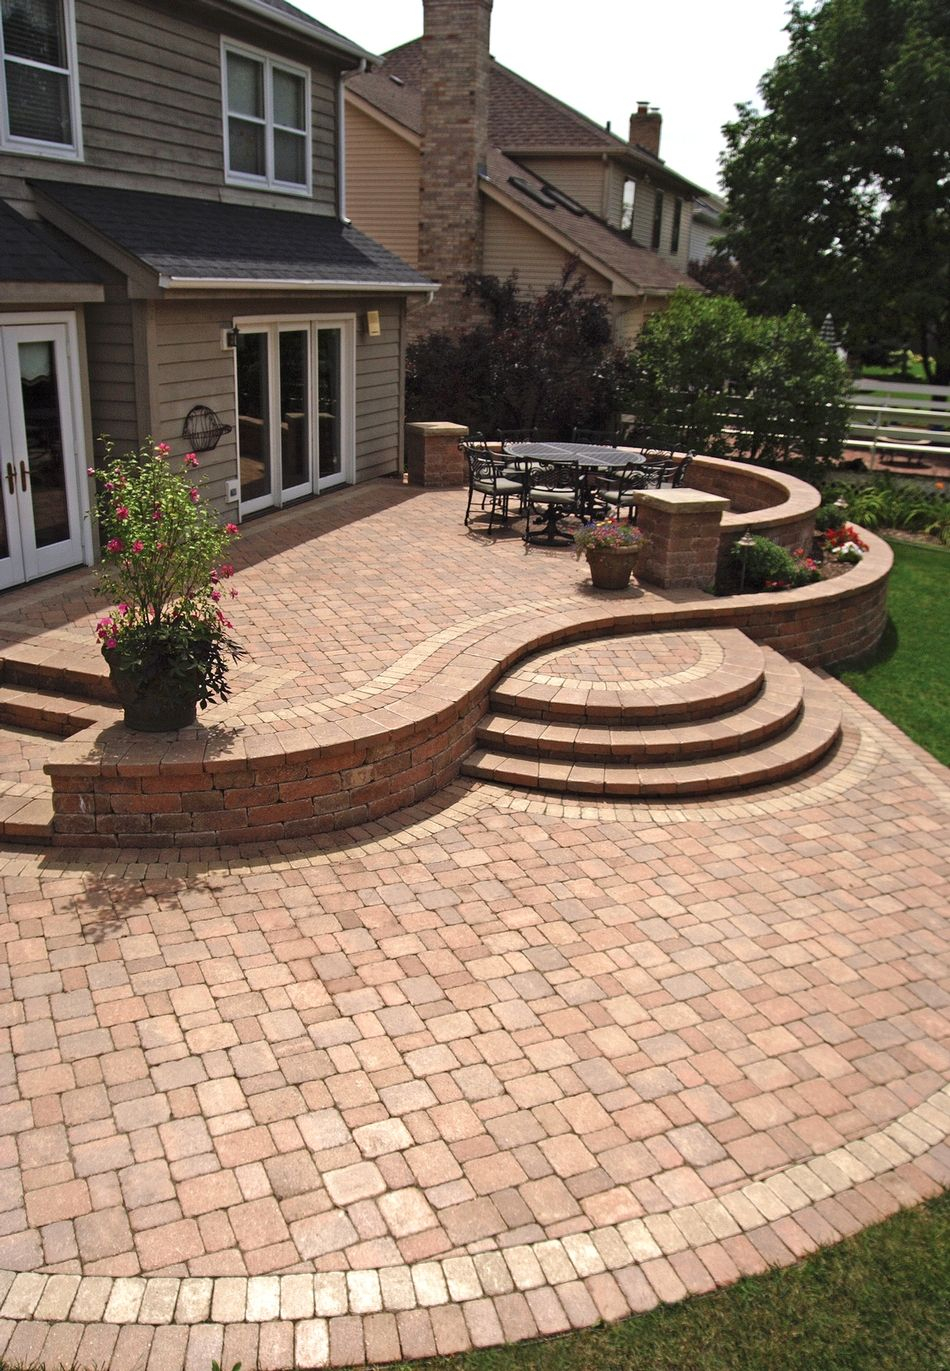 Stone Patio Designs Ideas Declaration Backyard Patio Designs in 11 Smart Initiatives of How to Craft Backyard Stone Patio Design Ideas